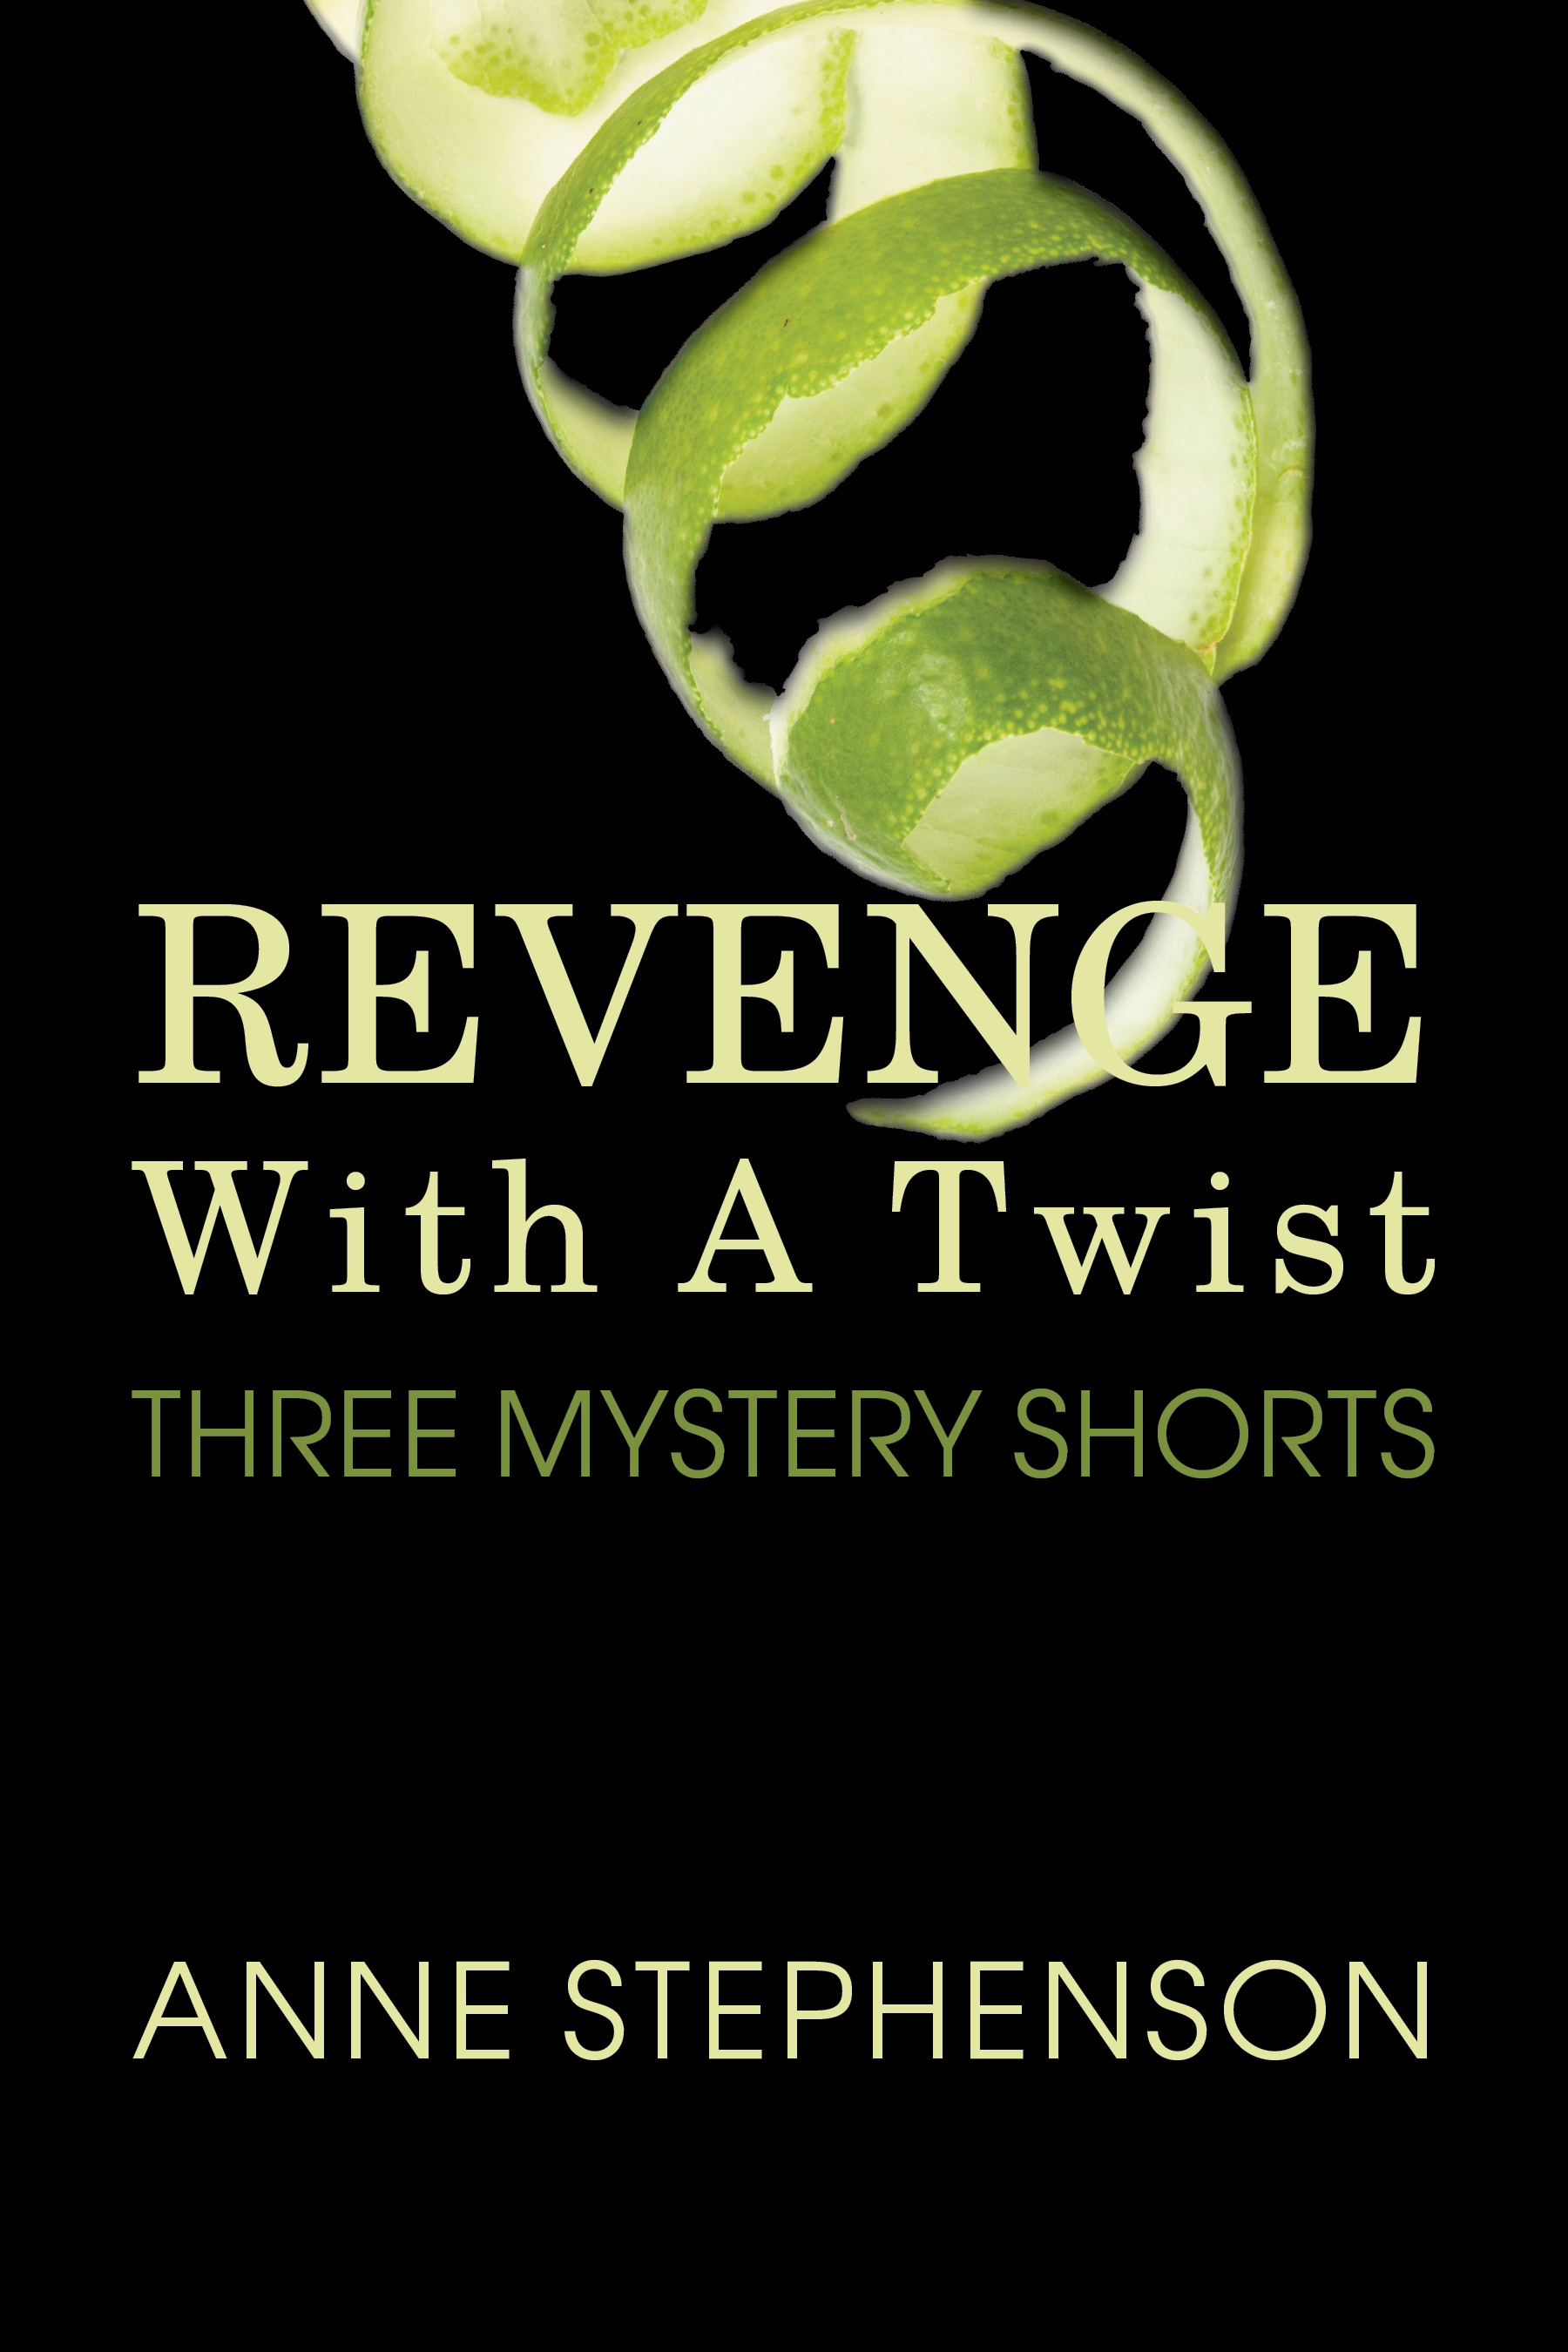 Revenge With A Twist   by  Anne Stephenson  Available on  Kobo  and  Kindle , as well as other ebook platforms!